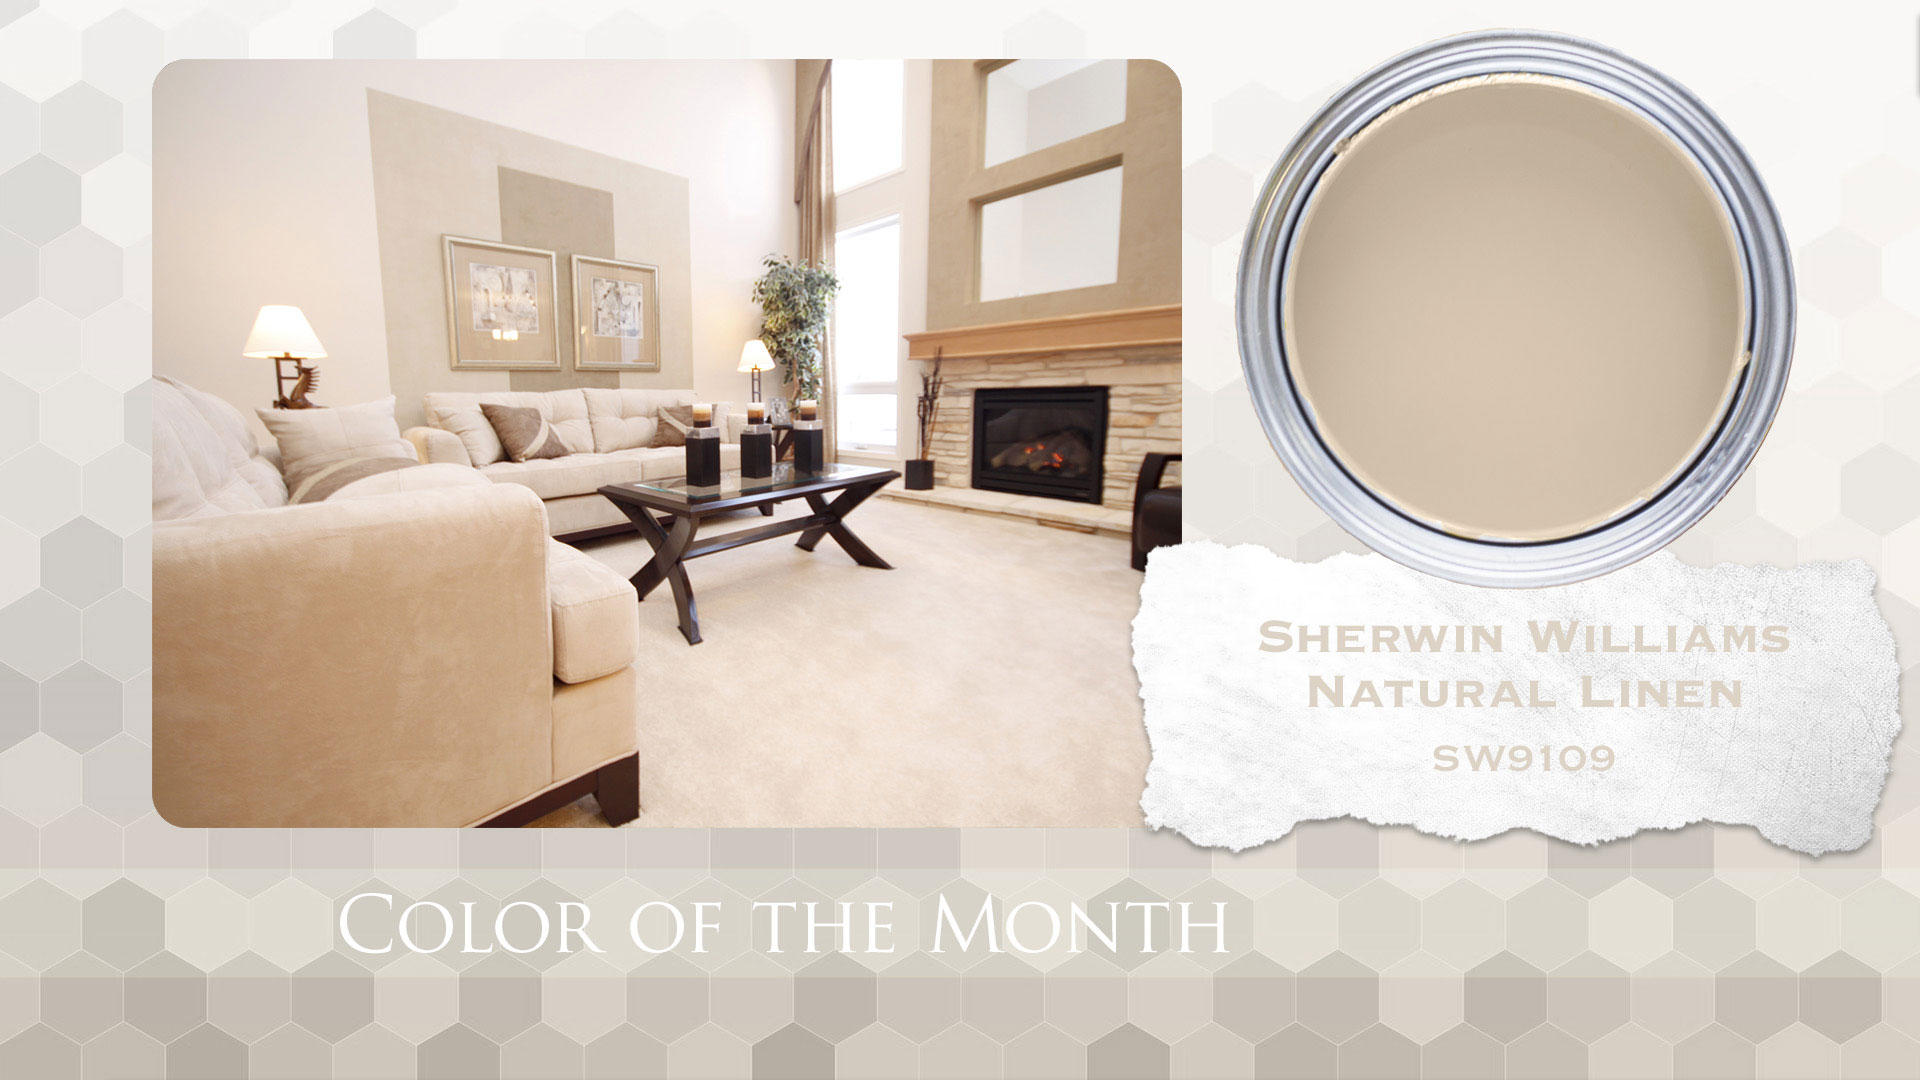 Sherwin Williams Forever Green paint color